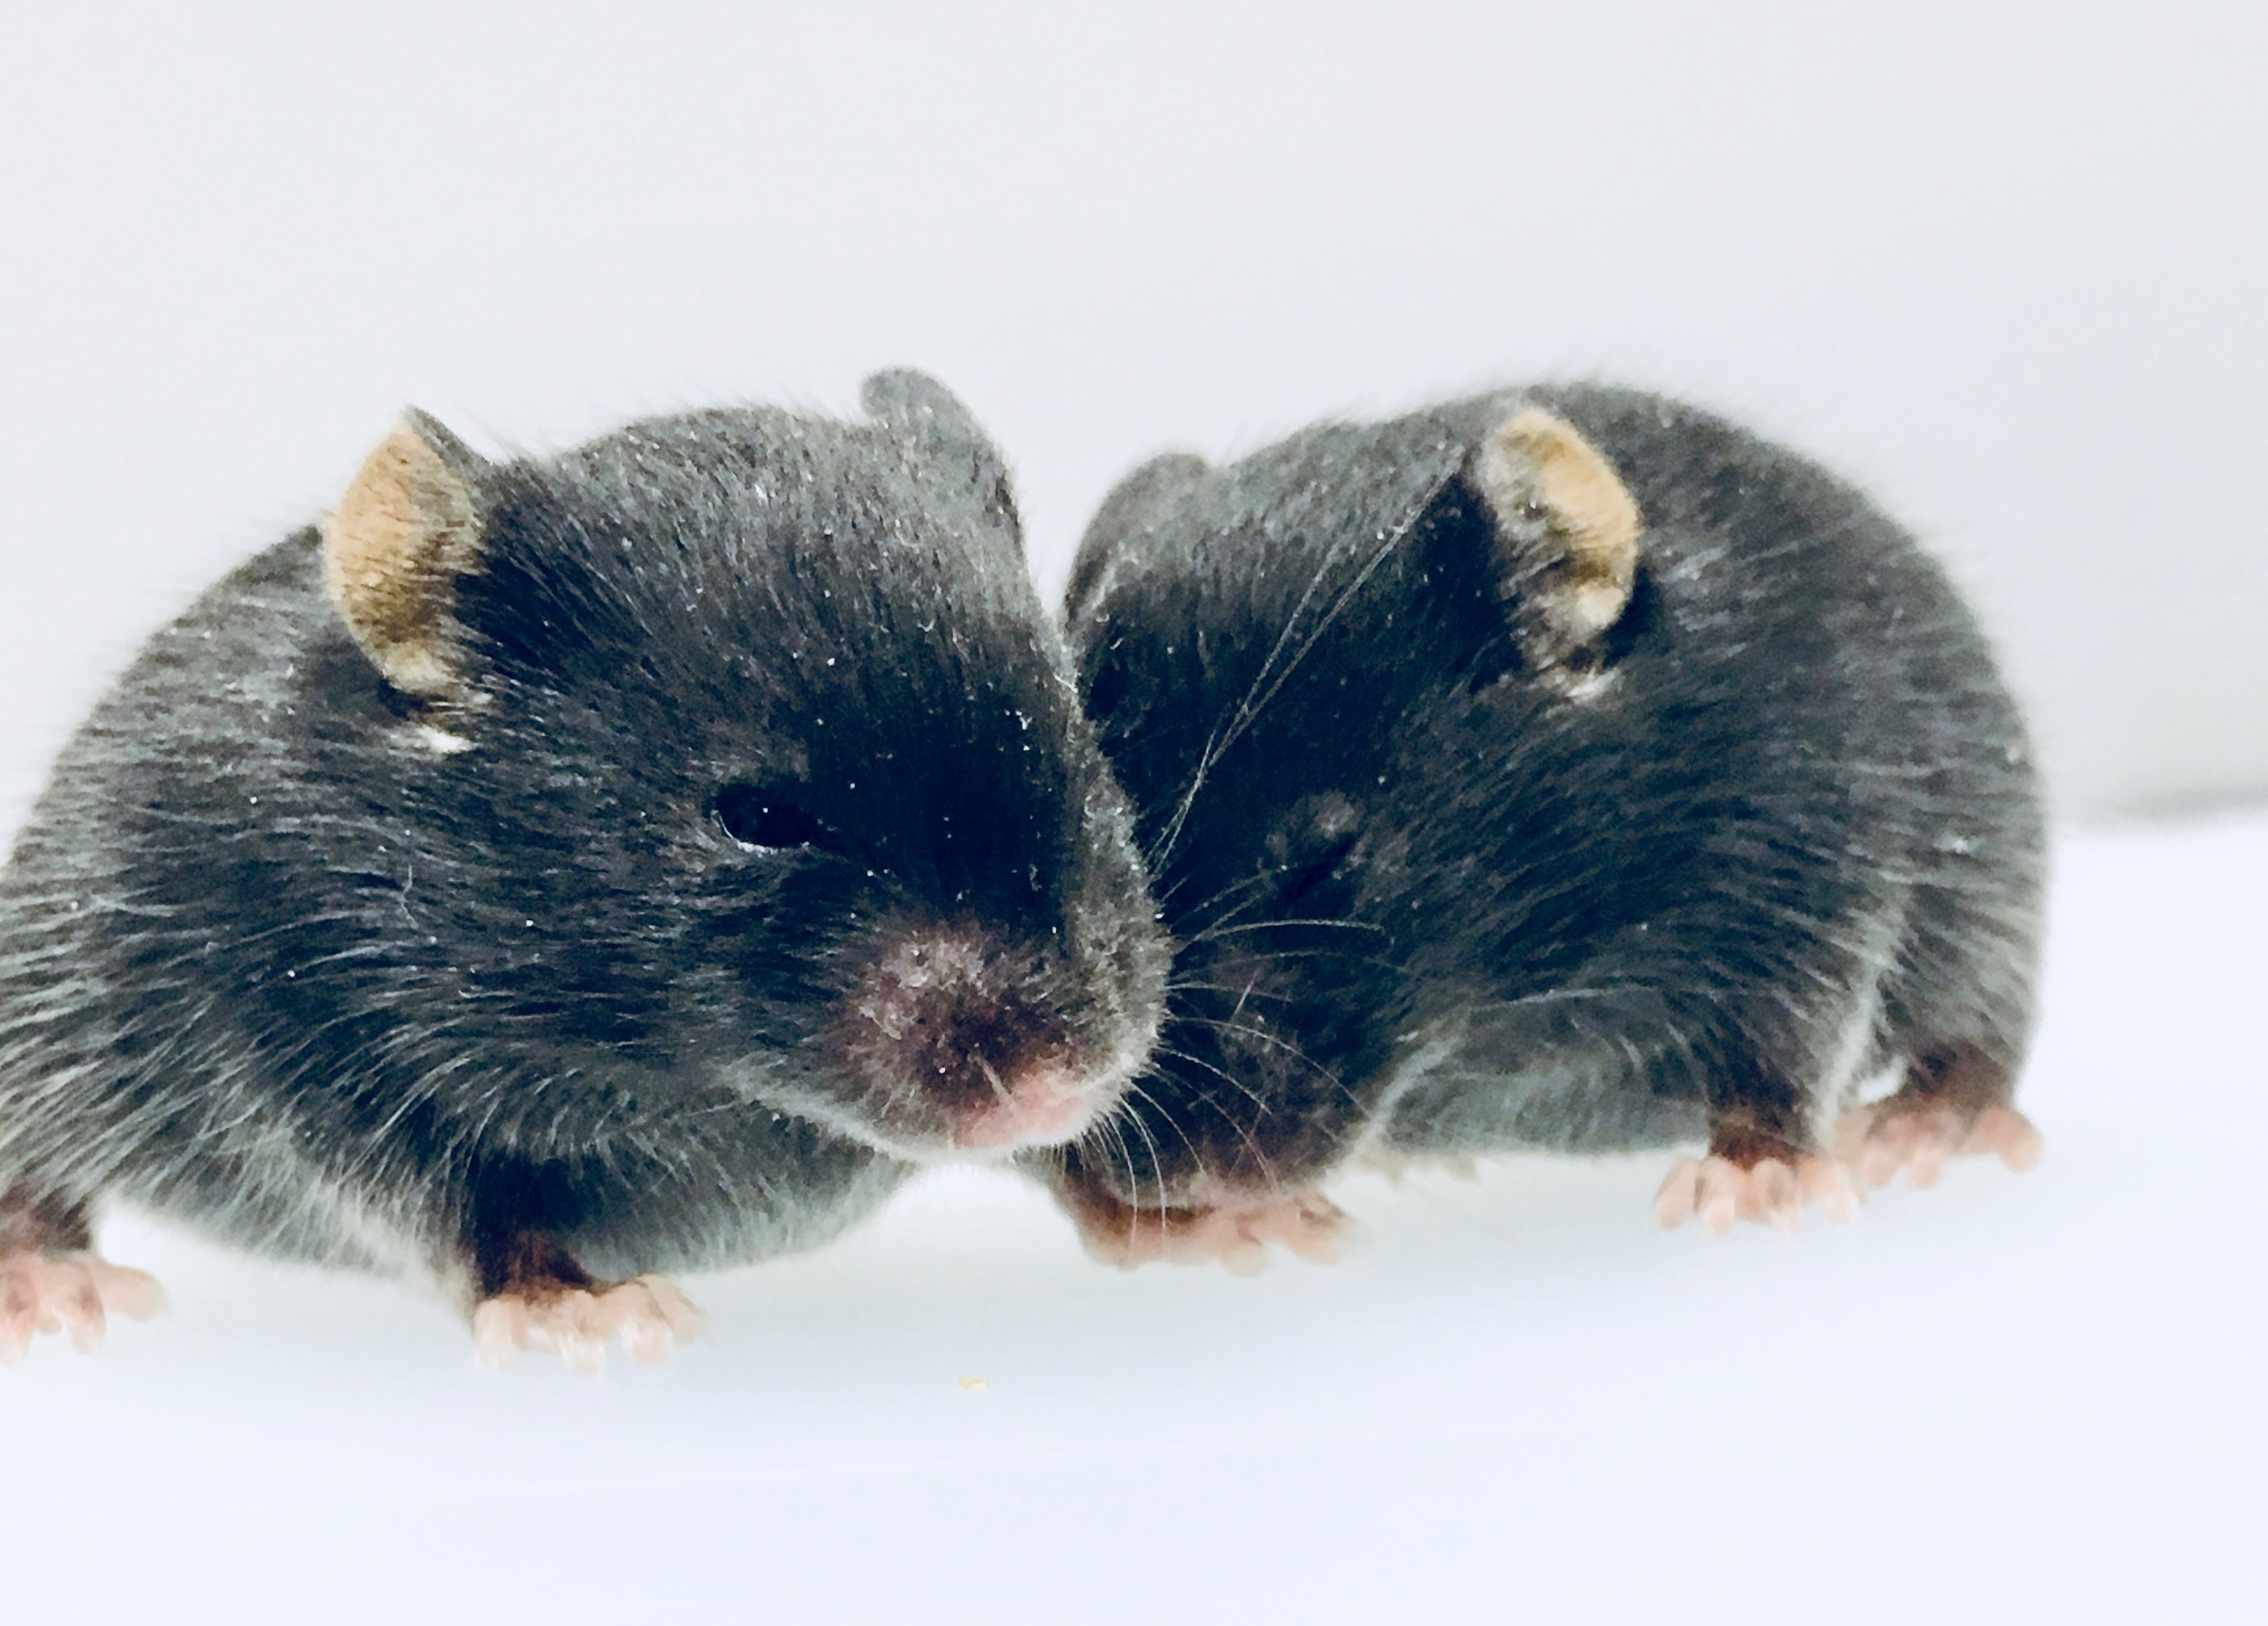 female and male mouse